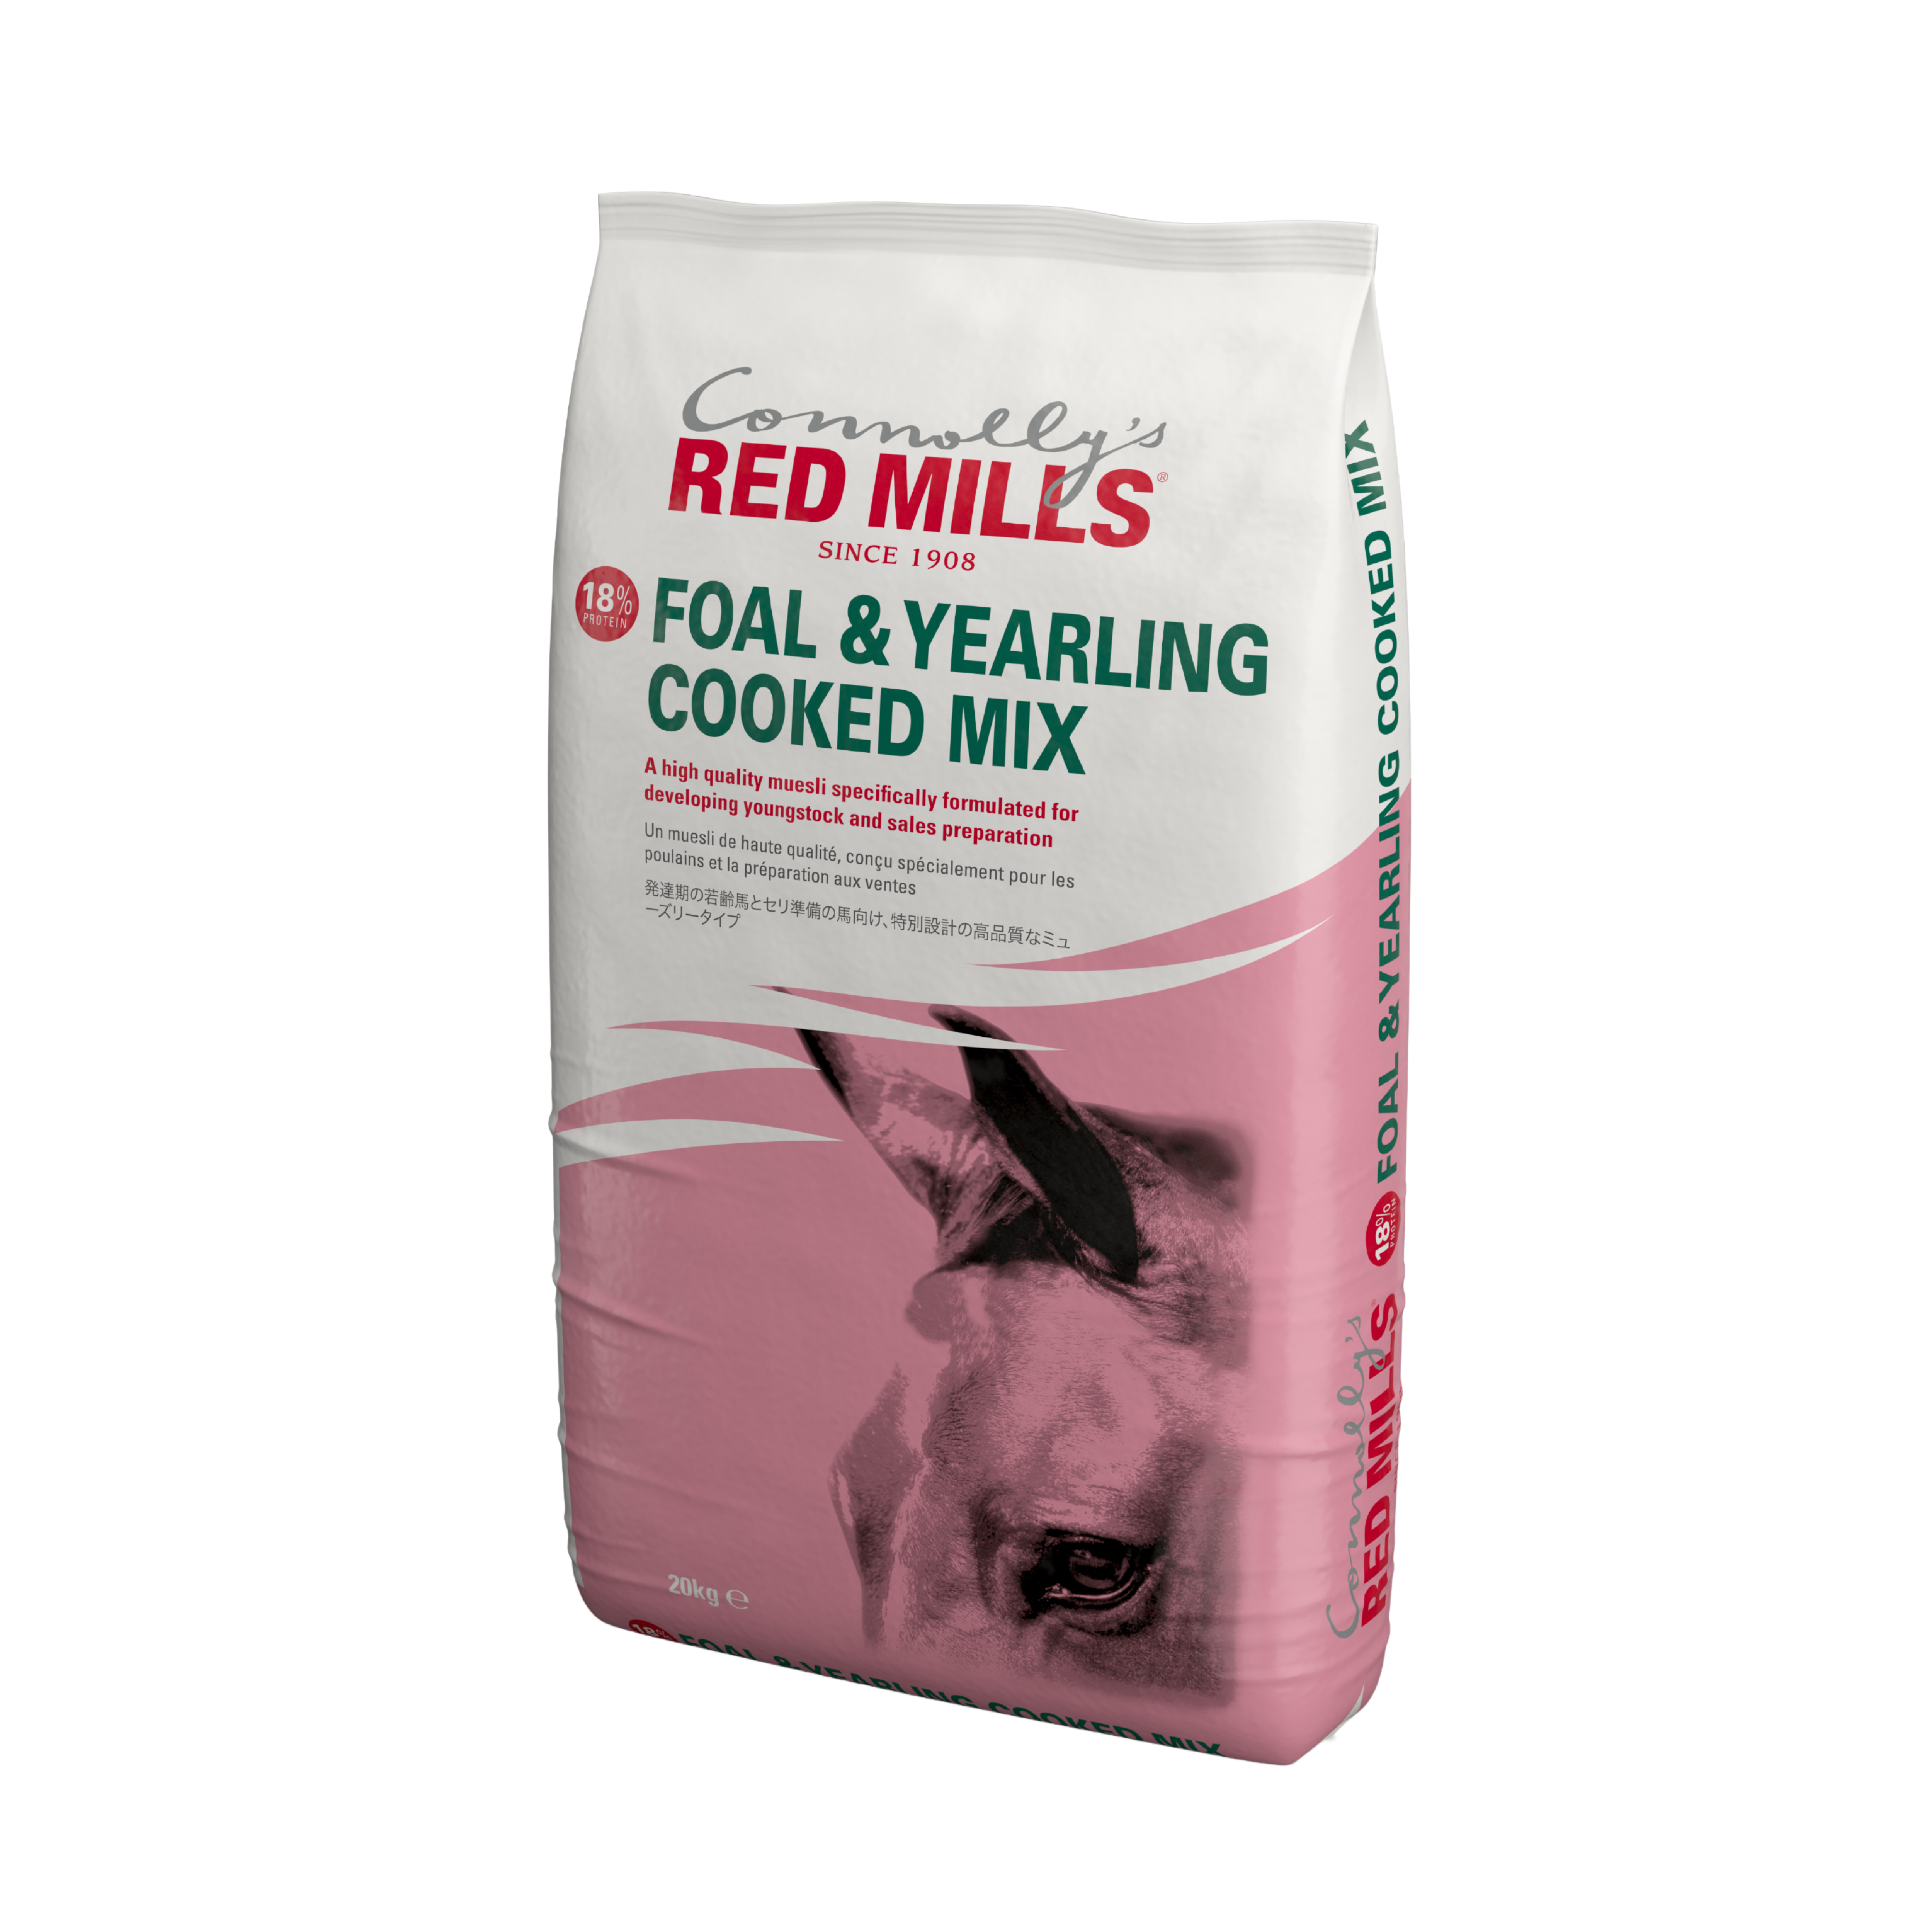 RED MILLS 18% Foal and Yearling Cooked Mix